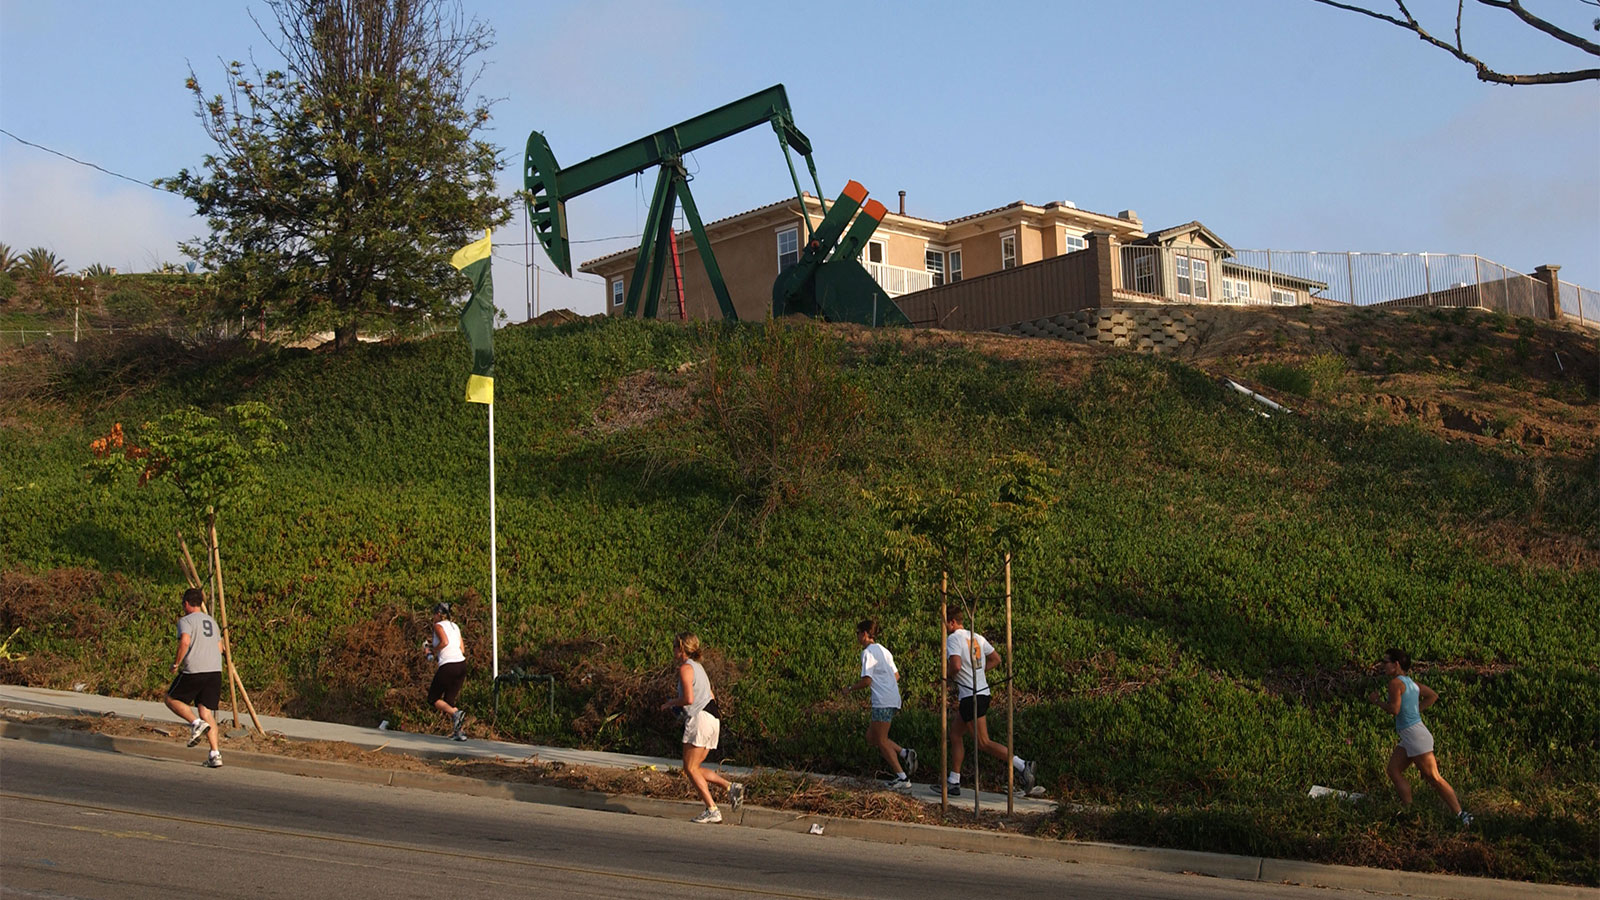 A group of joggers passes an oil well pumping next to residential units under construction in residential California